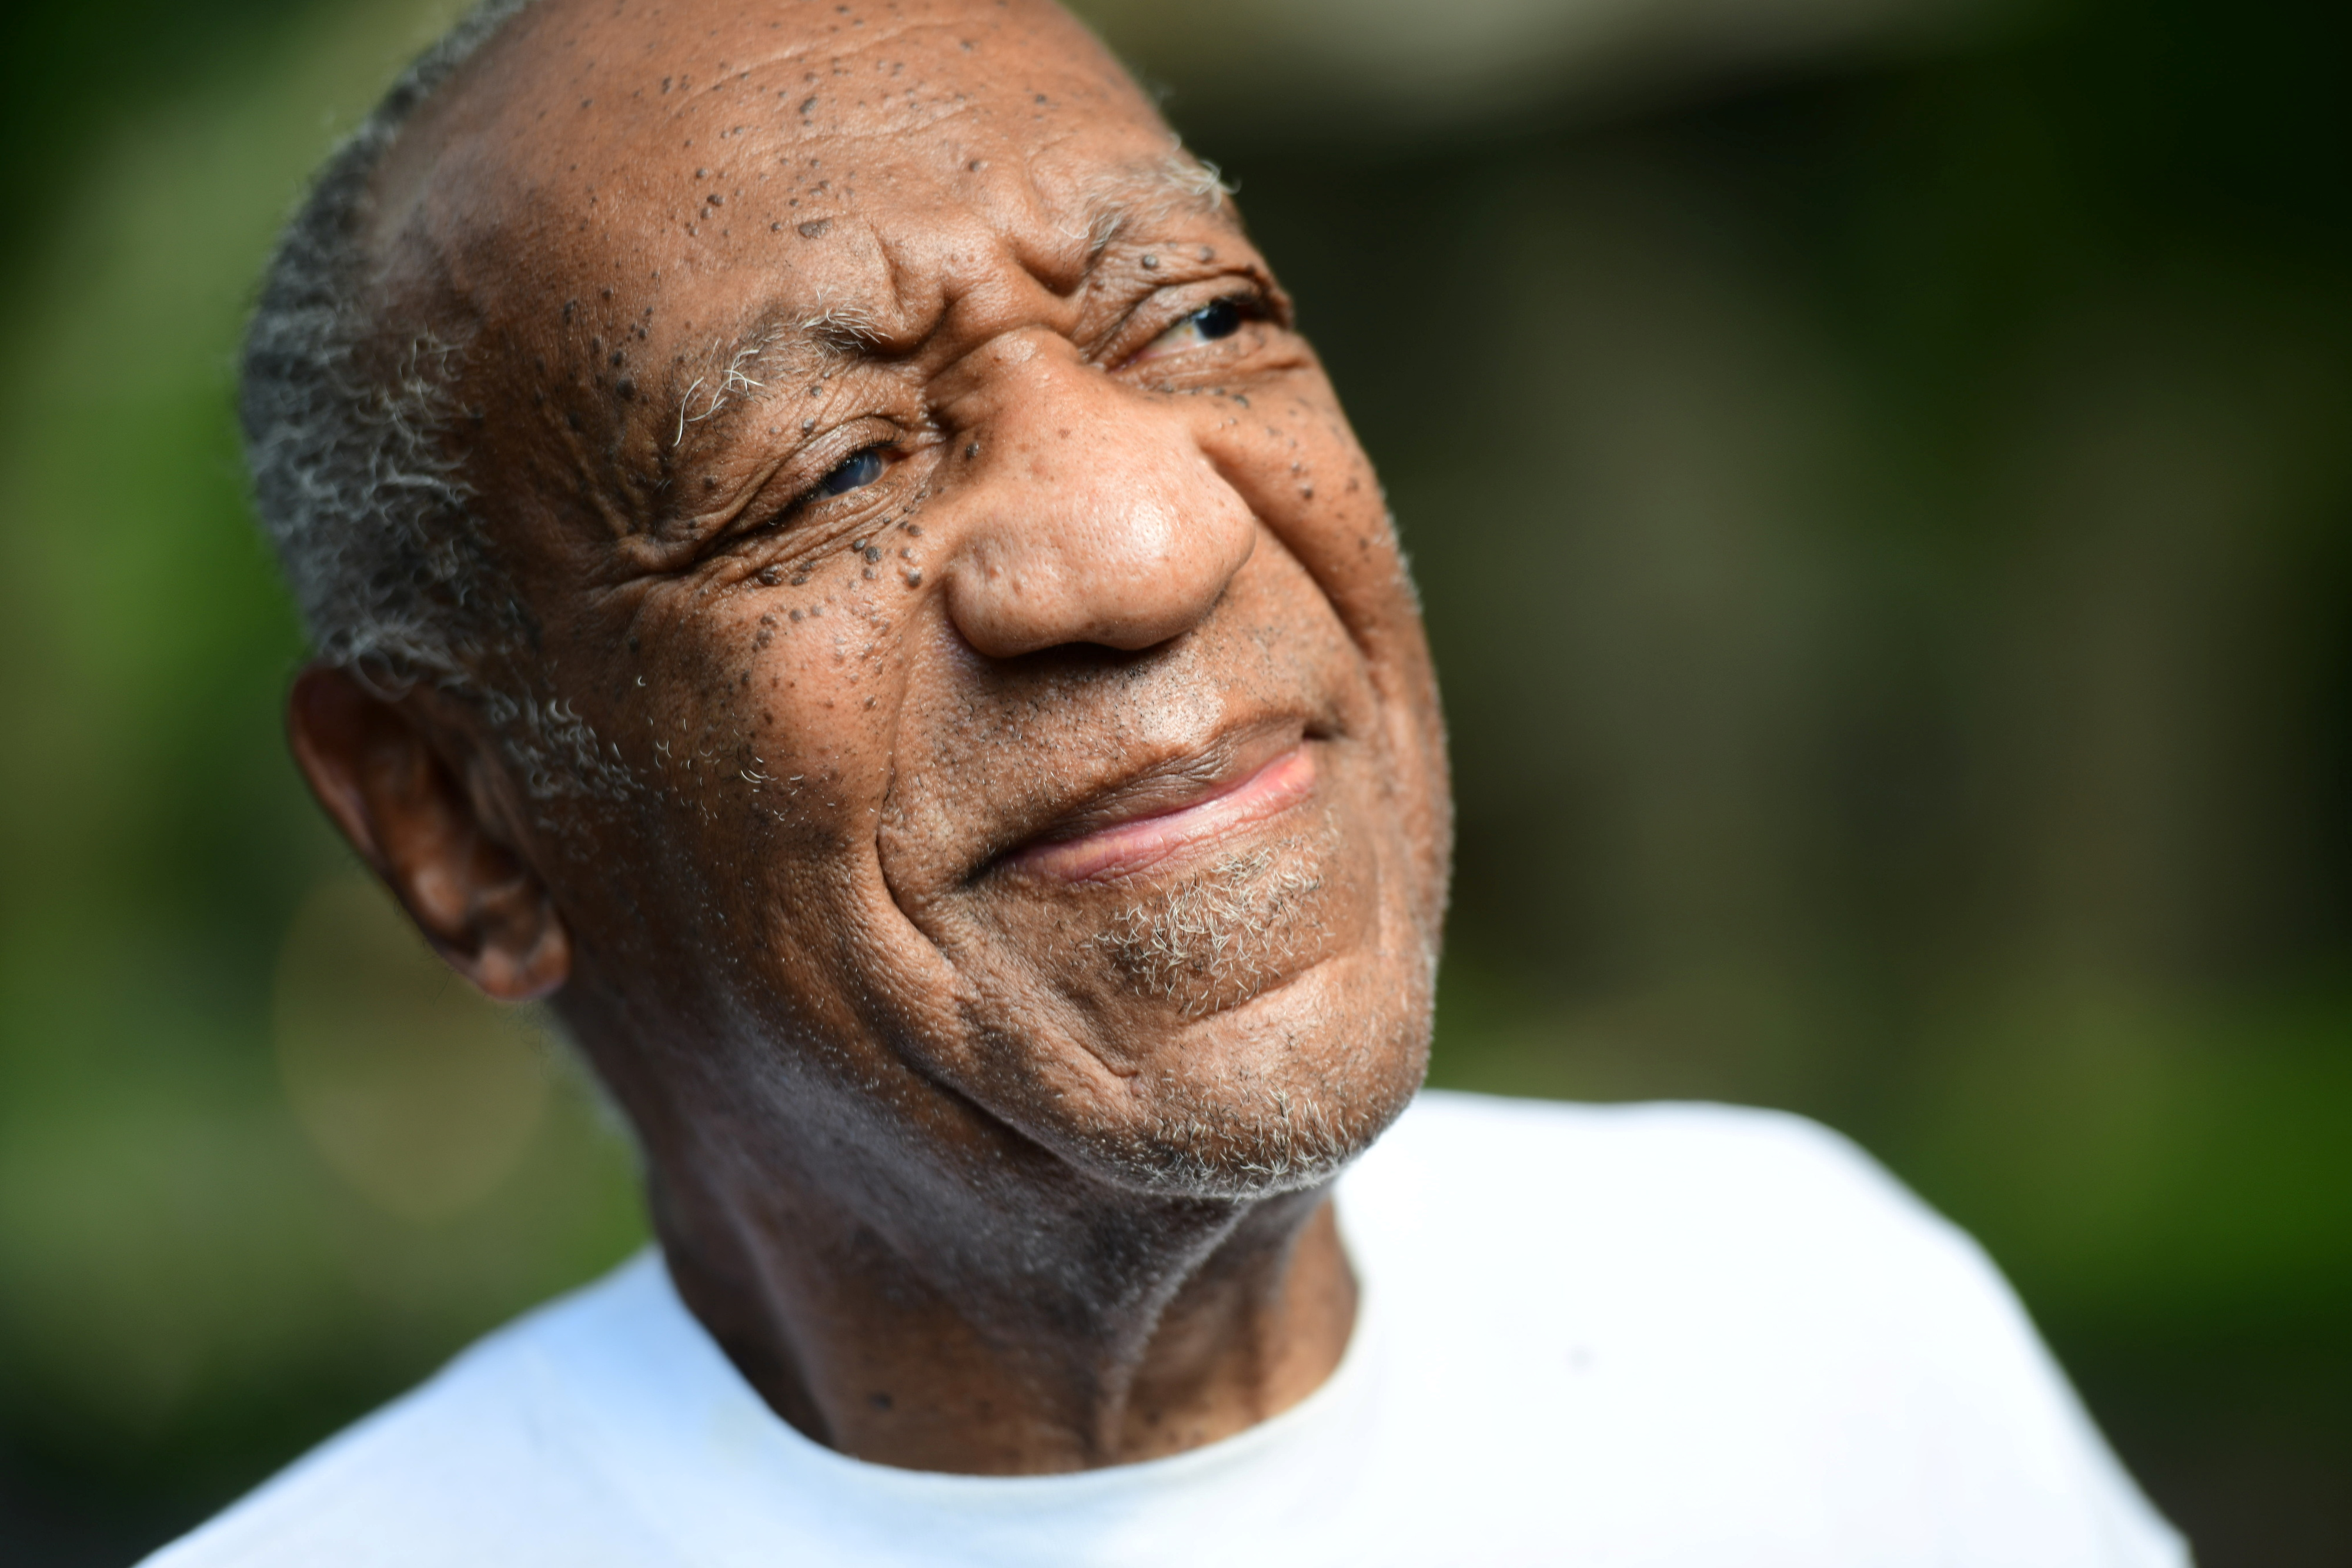 Bill Cosby looks on outside his house after Pennsylvania's highest court overturned his sexual assault conviction and ordered him released from prison immediately, in Elkins Park, Pennsylvania, U.S. June 30, 2021. REUTERS/Mark Makela